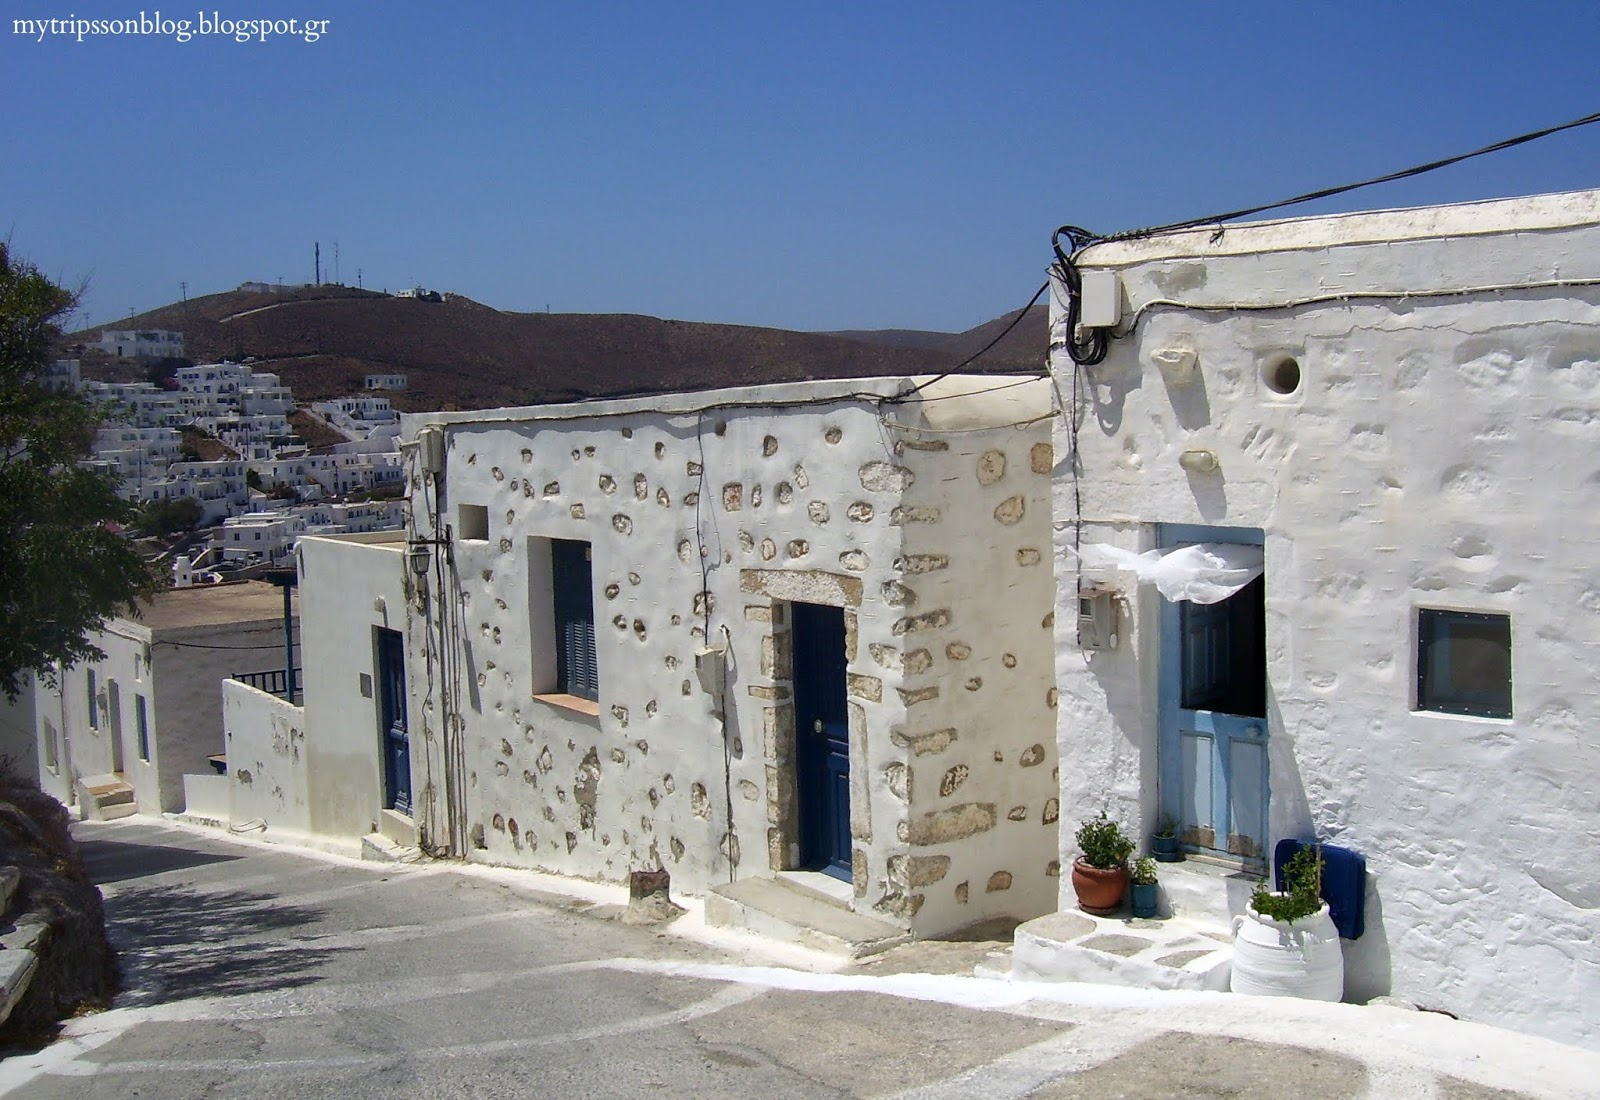 99ce2077879e My Trips On Blog  Στα σοκάκια της Χώρας (Αστυπάλαια)